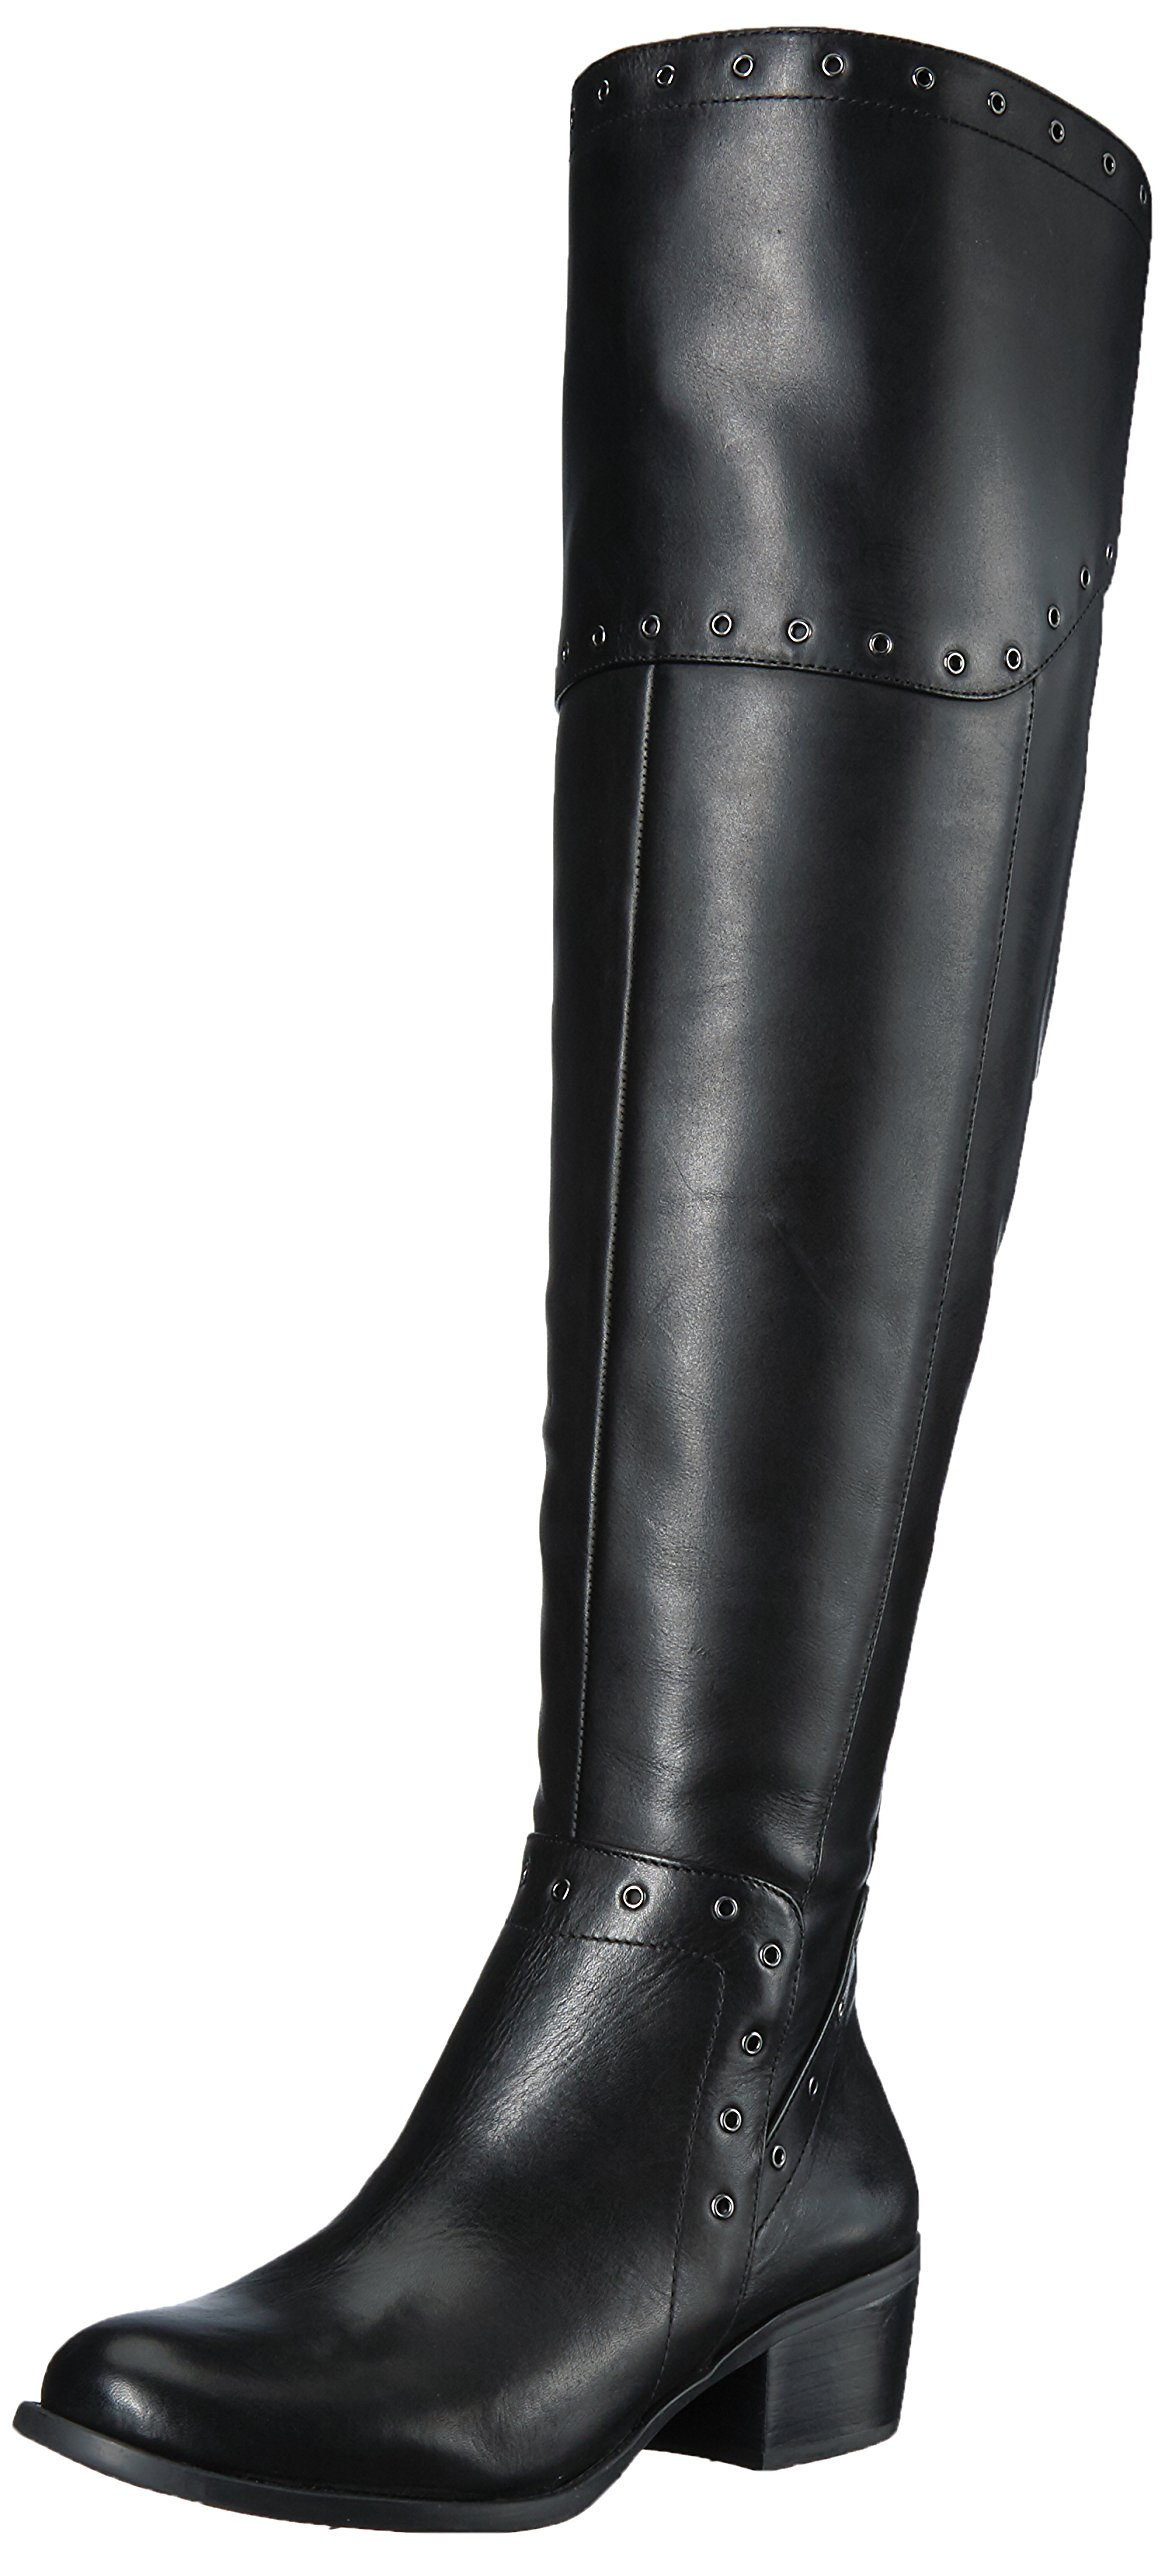 Vince Camuto Women's Bestan Over The Knee Boot, Black Wide Calf, 9 Medium US by Vince Camuto (Image #1)